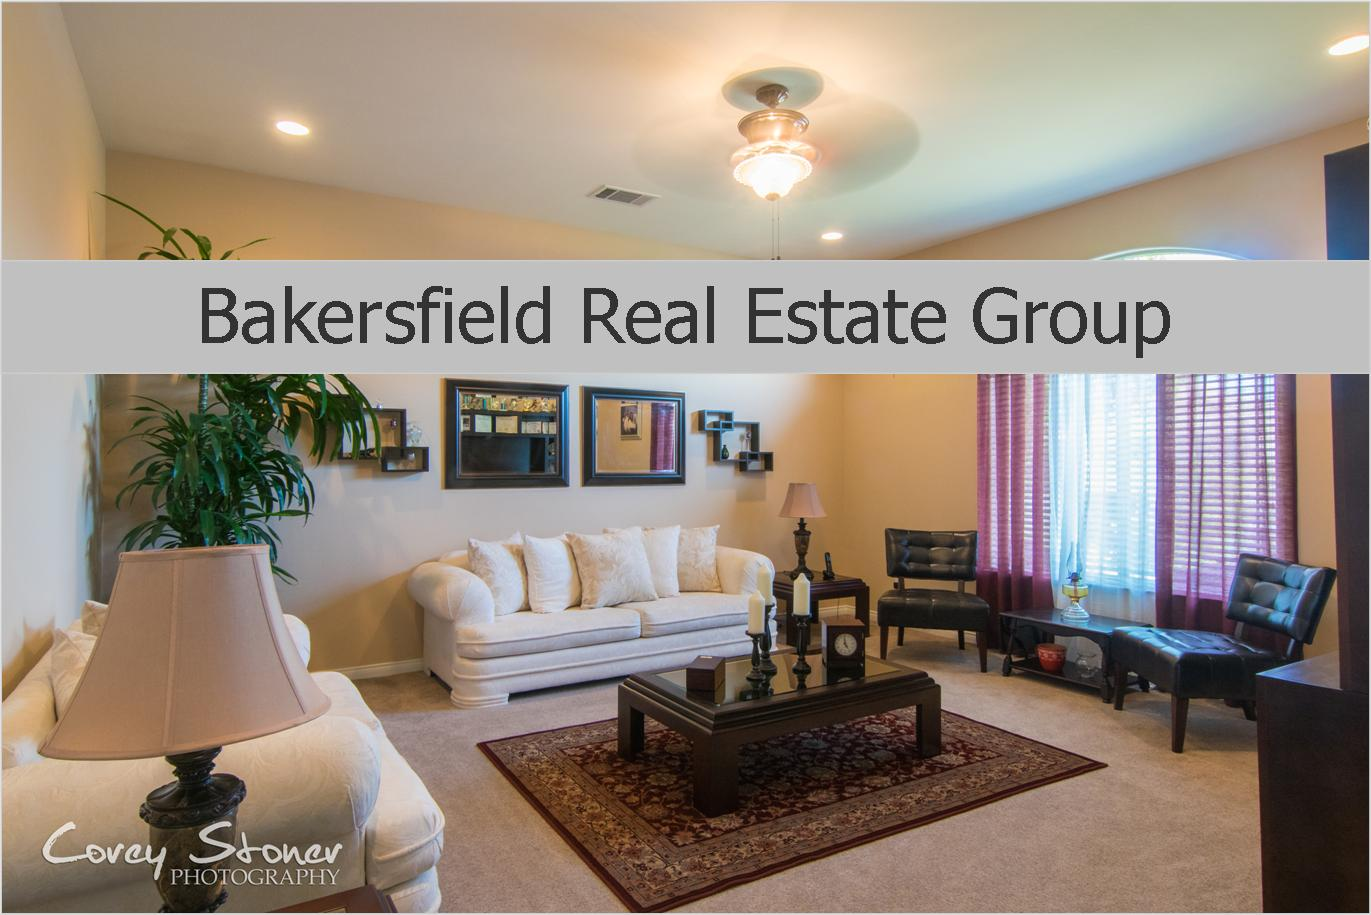 Meet Bakersfield Real Estate Group - 661-704-4244